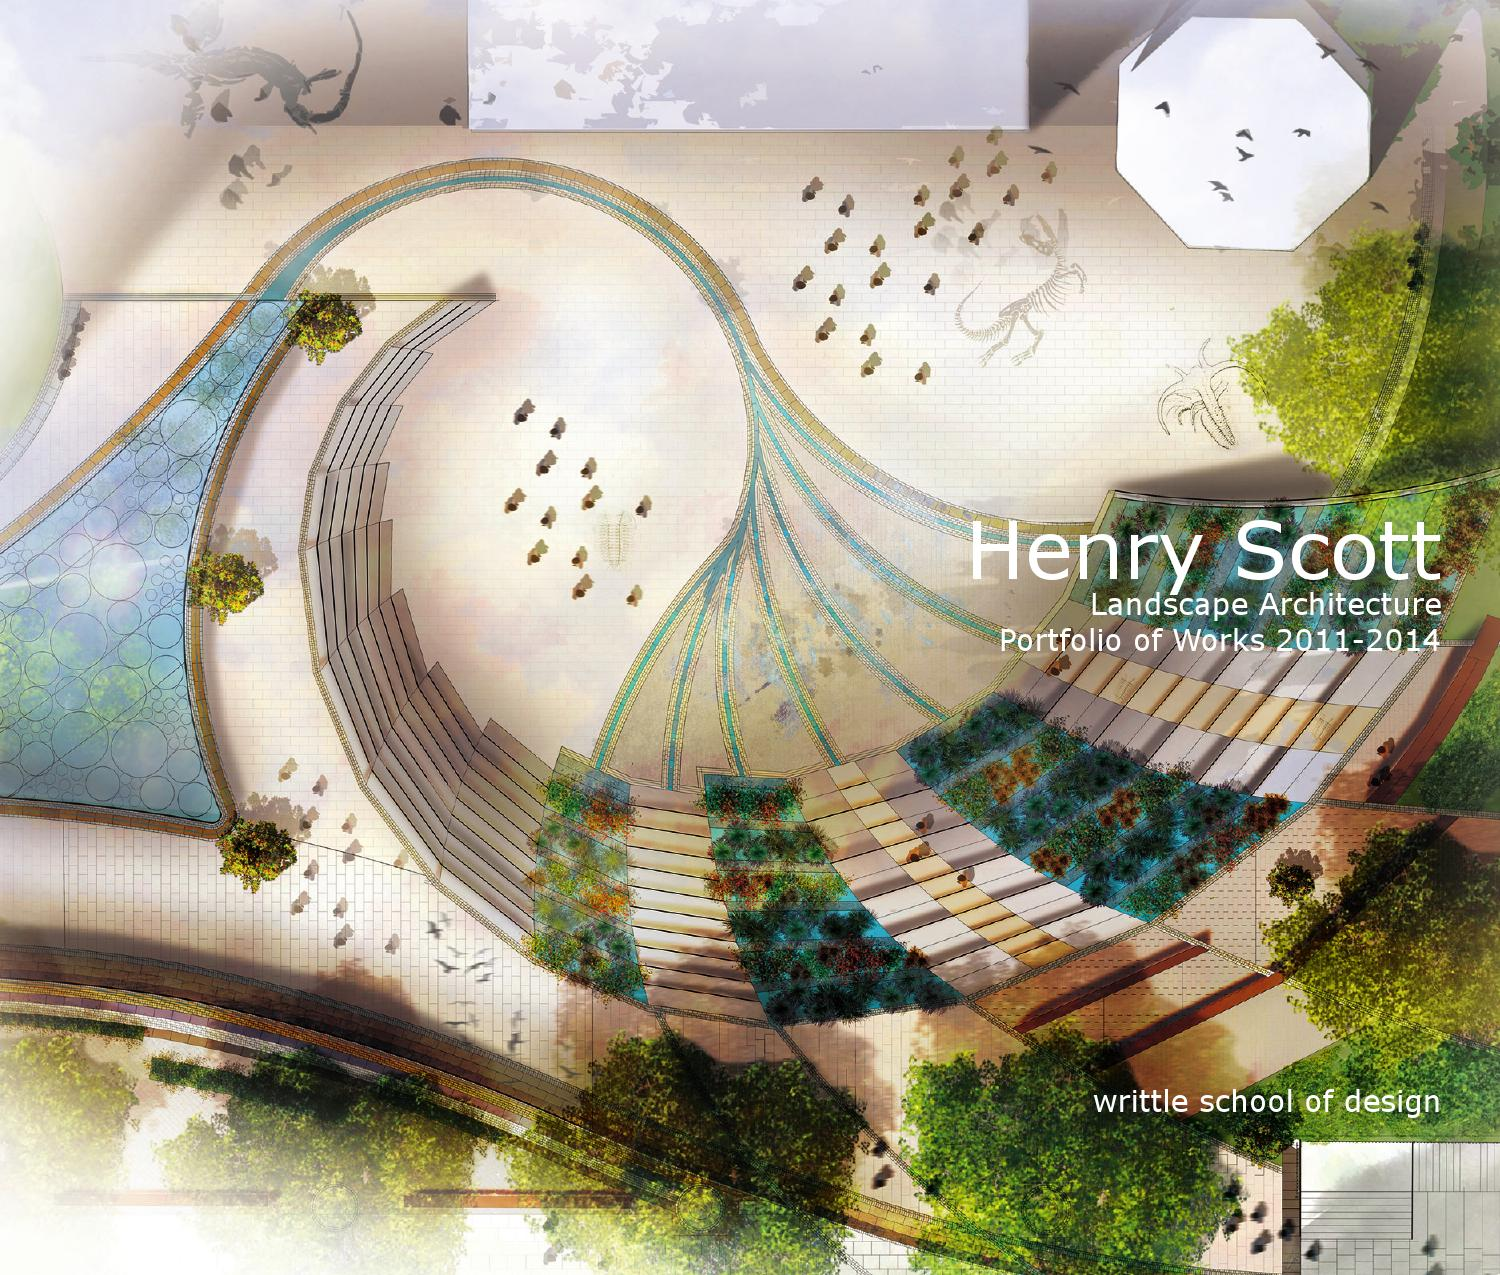 Landscape architecture portfolio of works by henry scott for Landscape design books